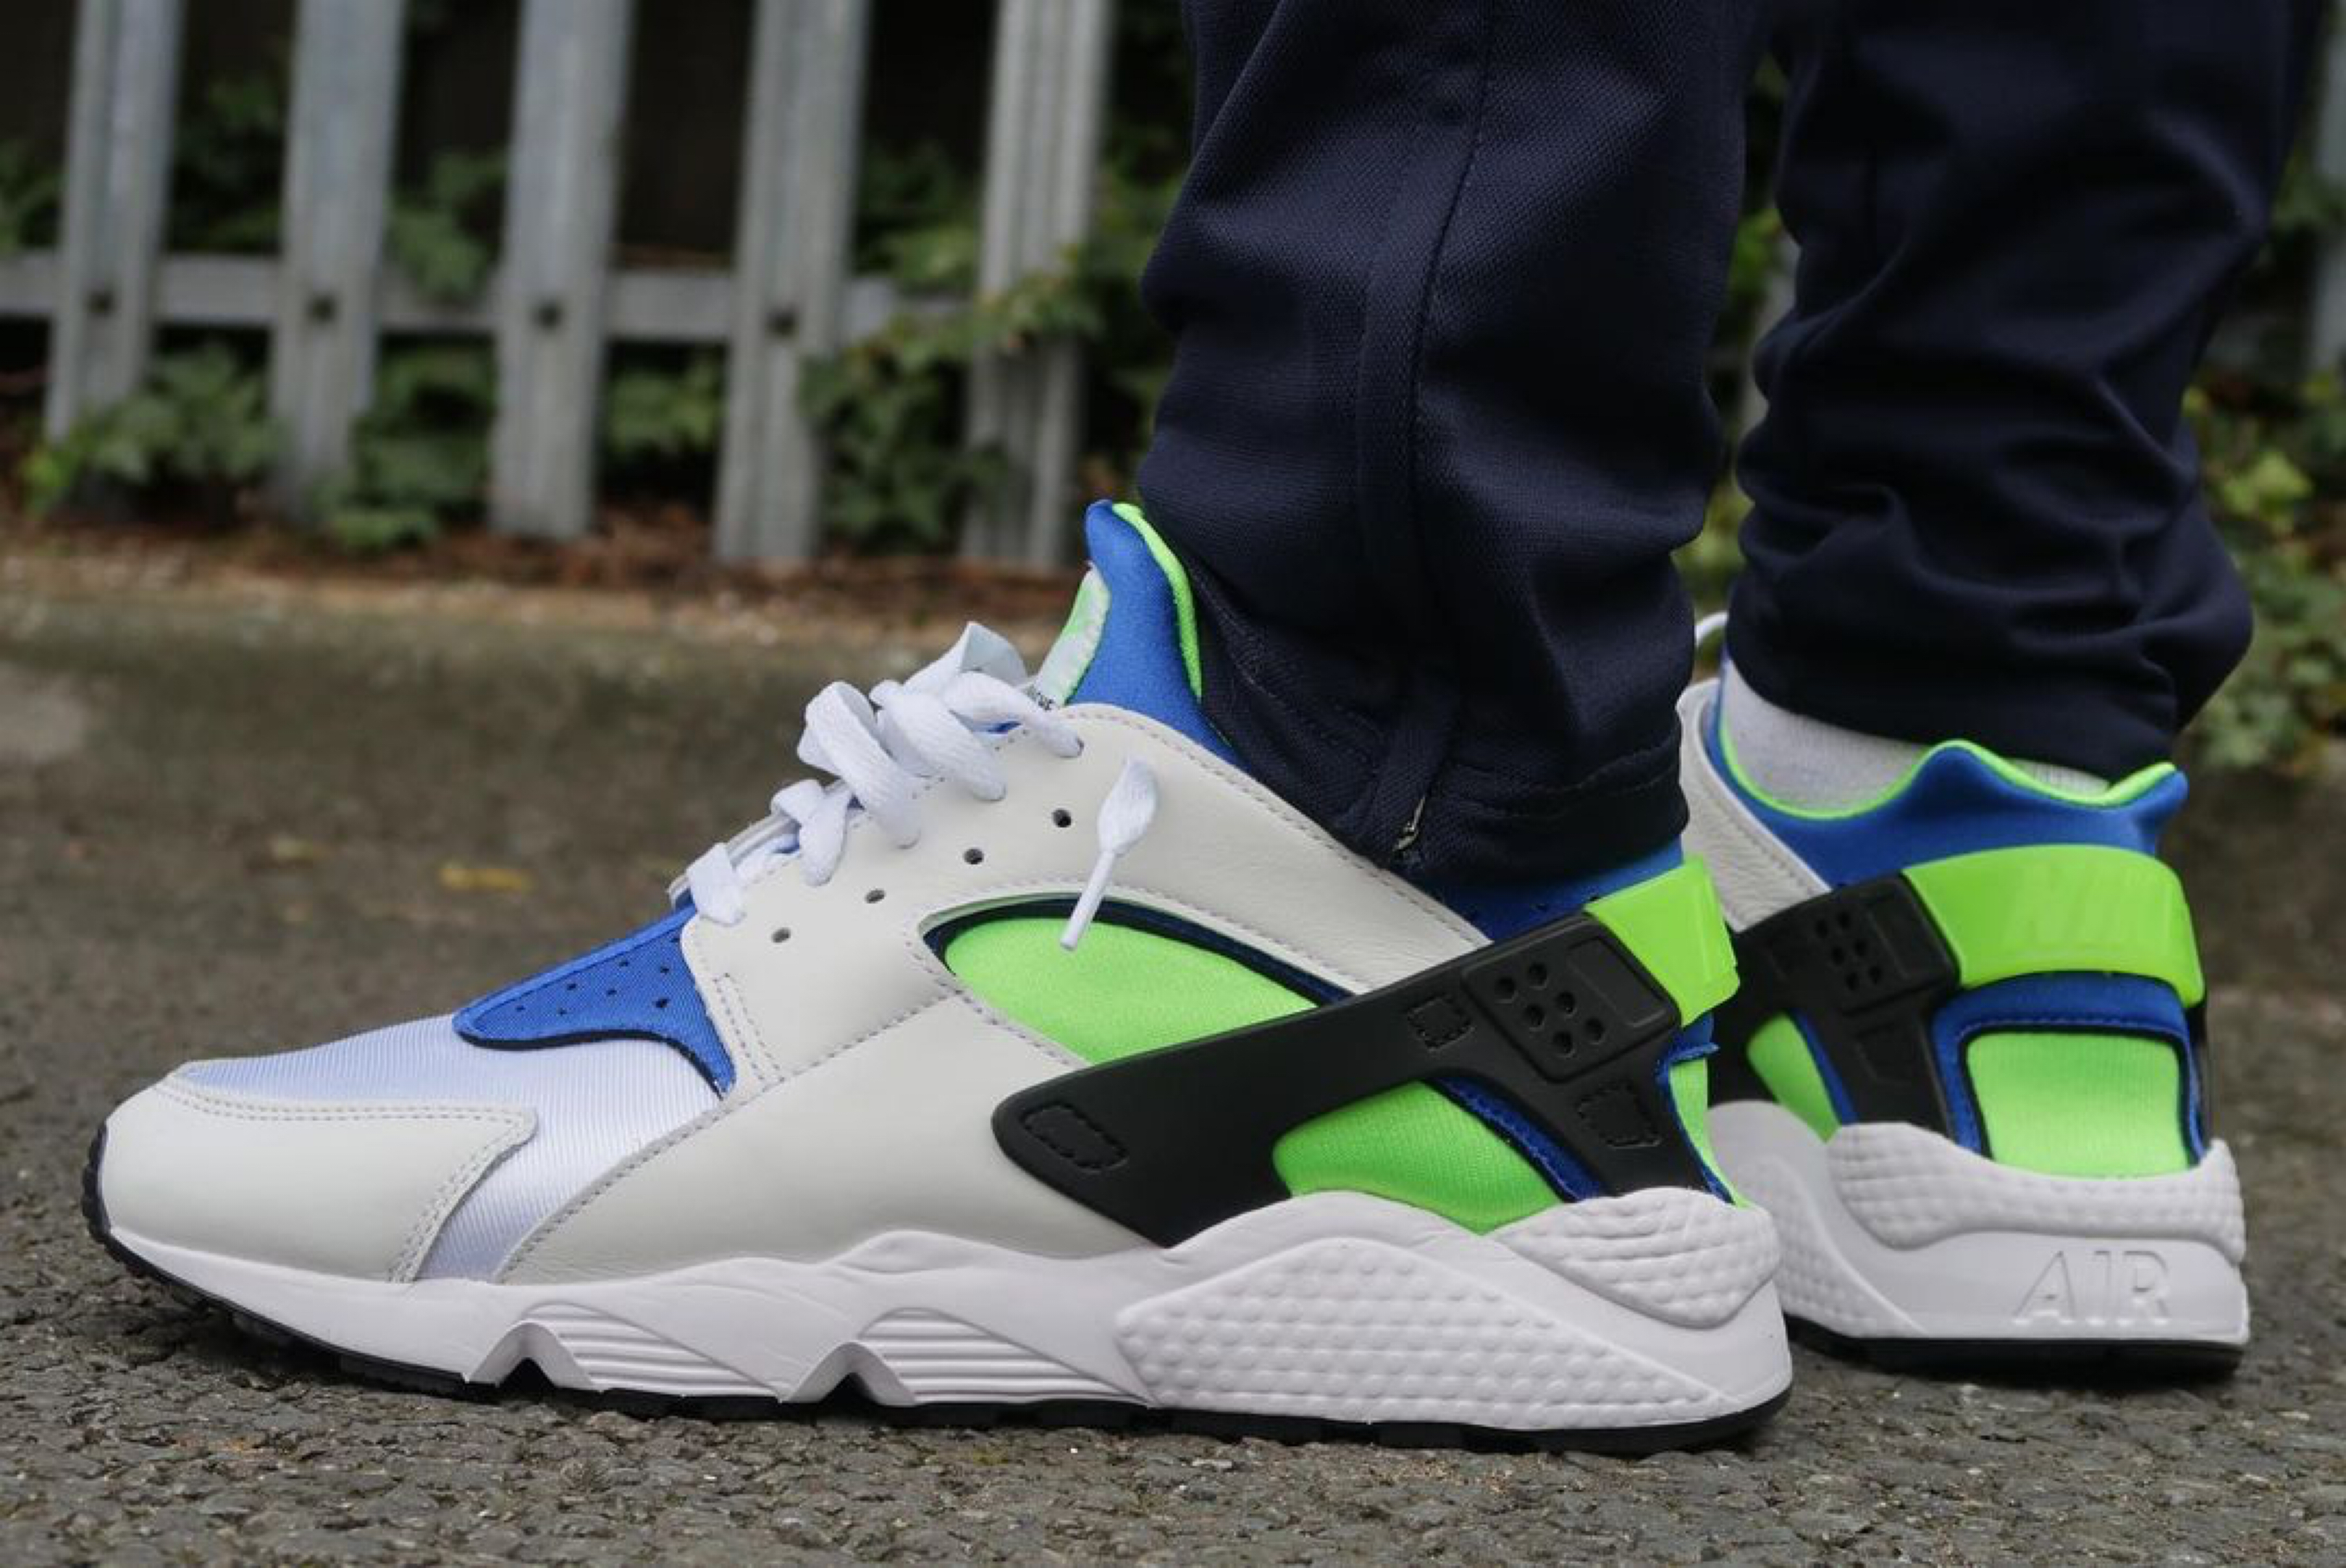 Nike huarache scream green on feet